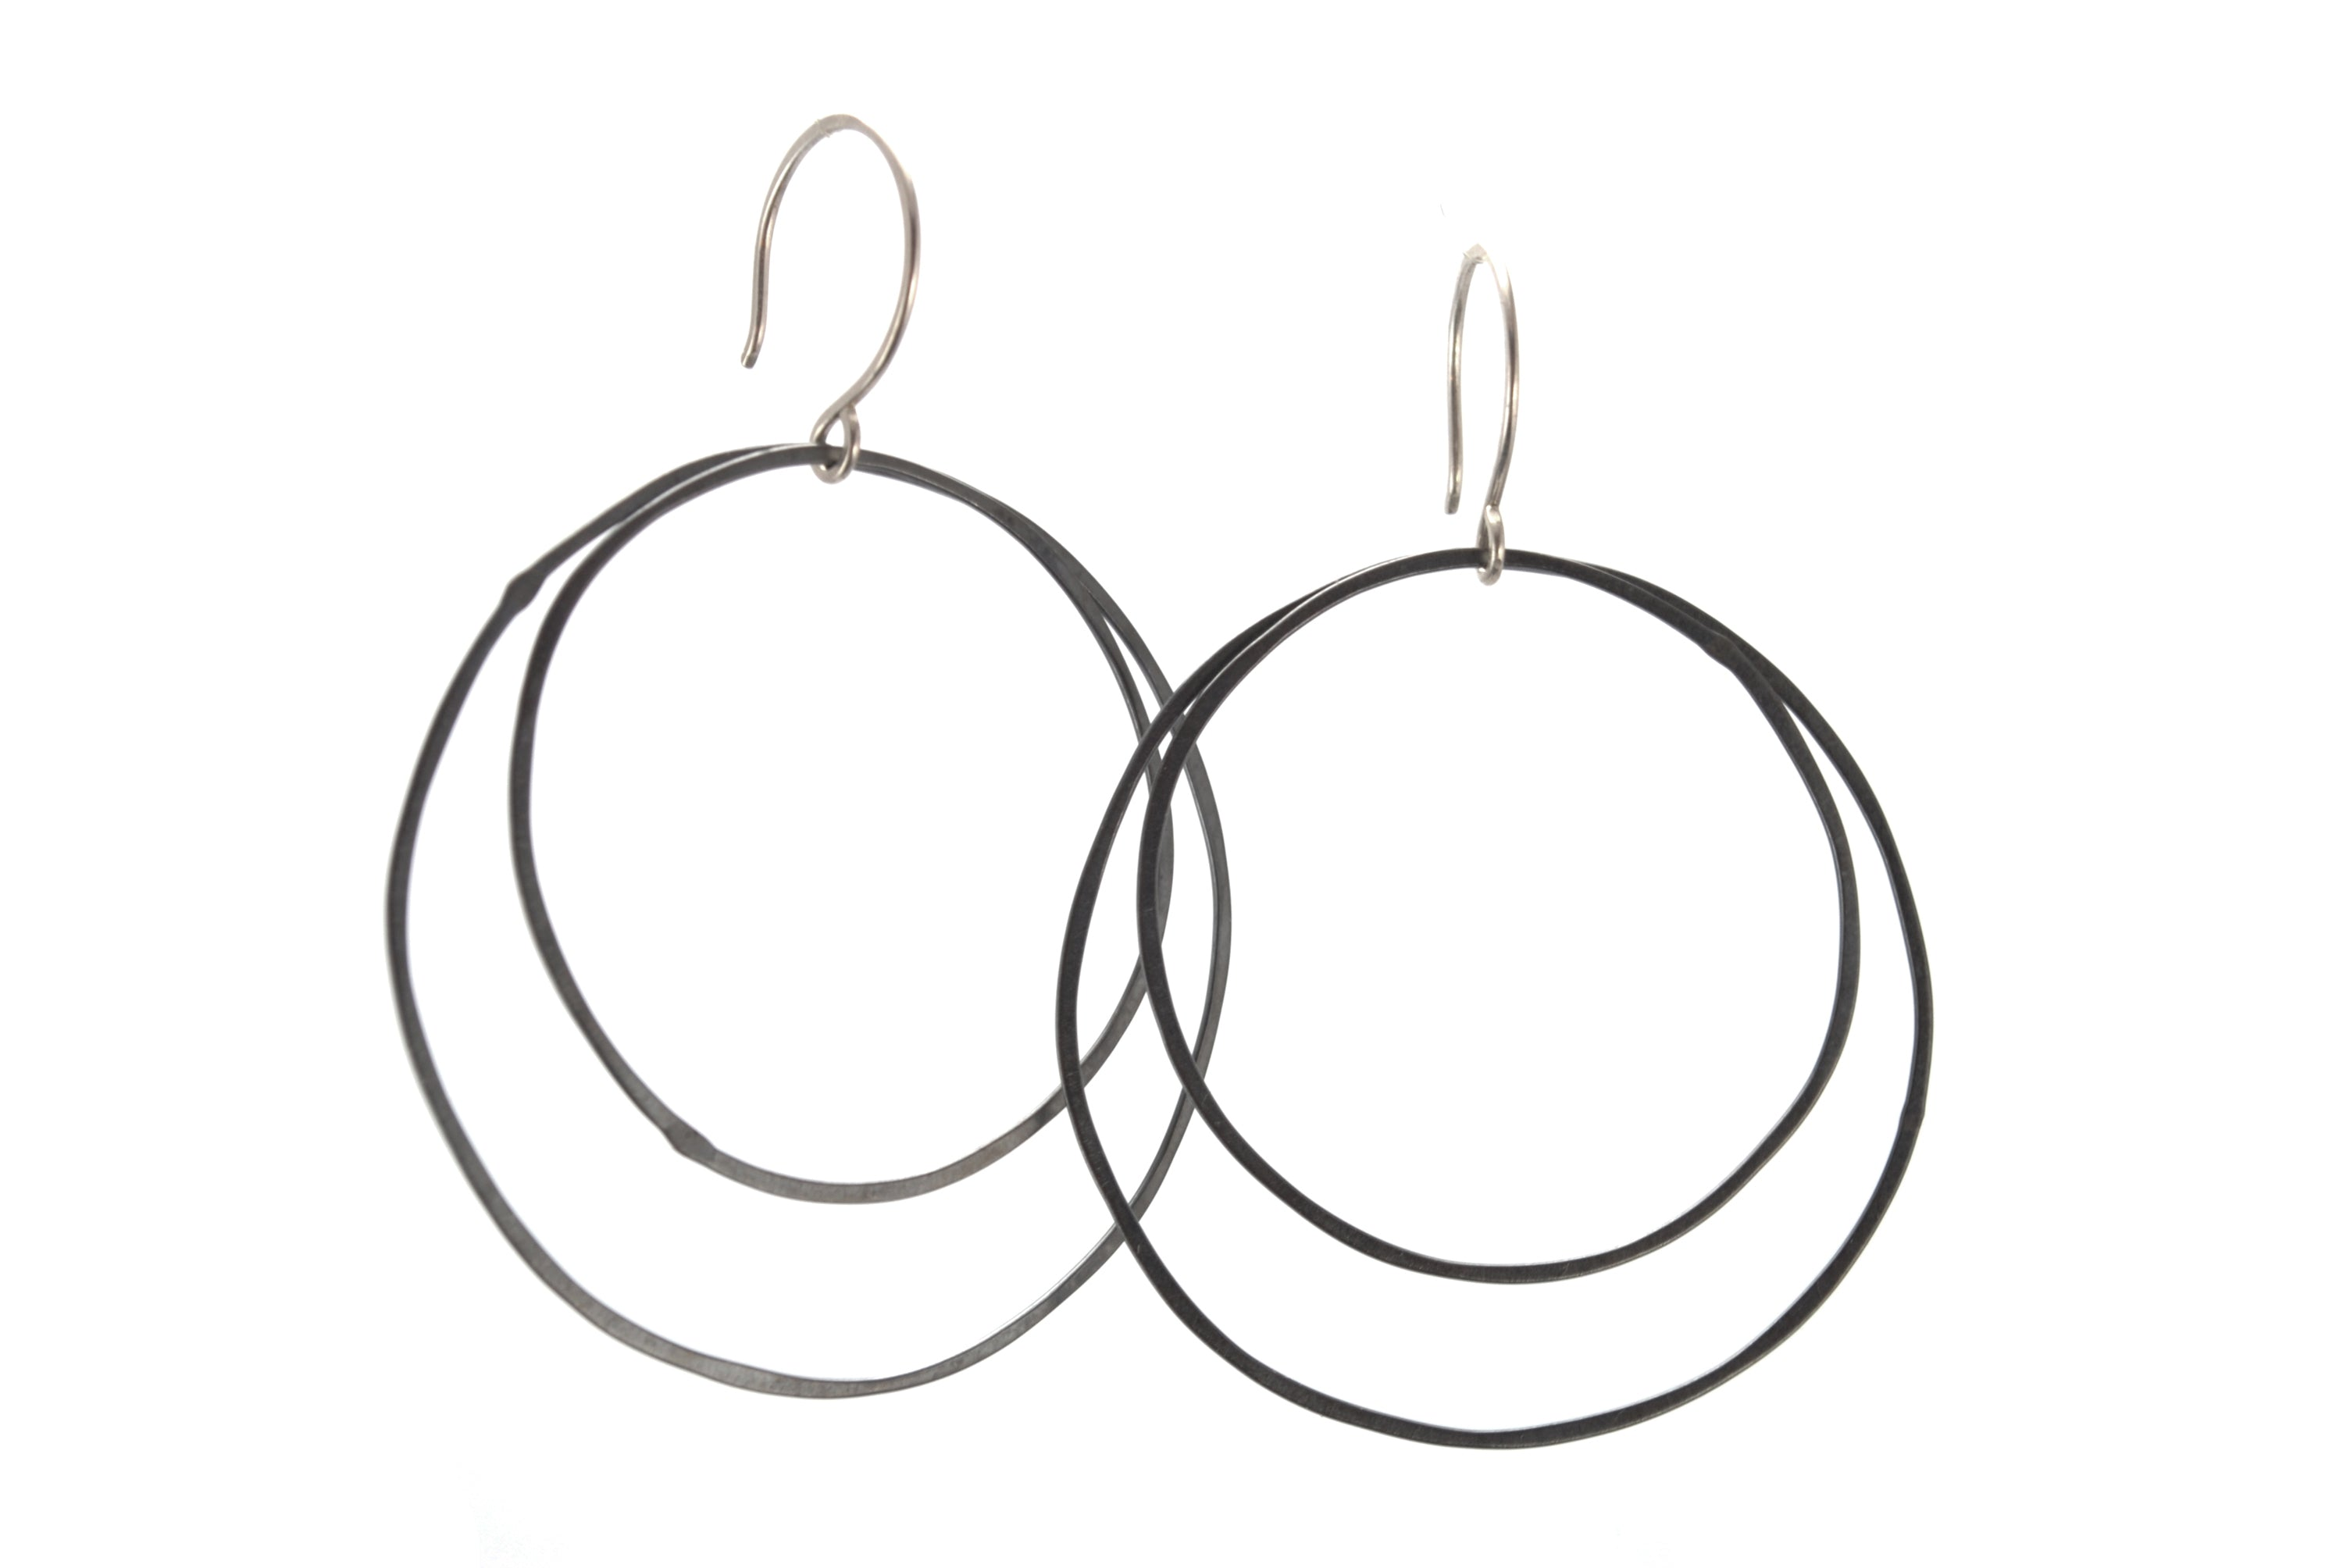 Oxidized Silver Hoop Earrings | Olivia de Soria